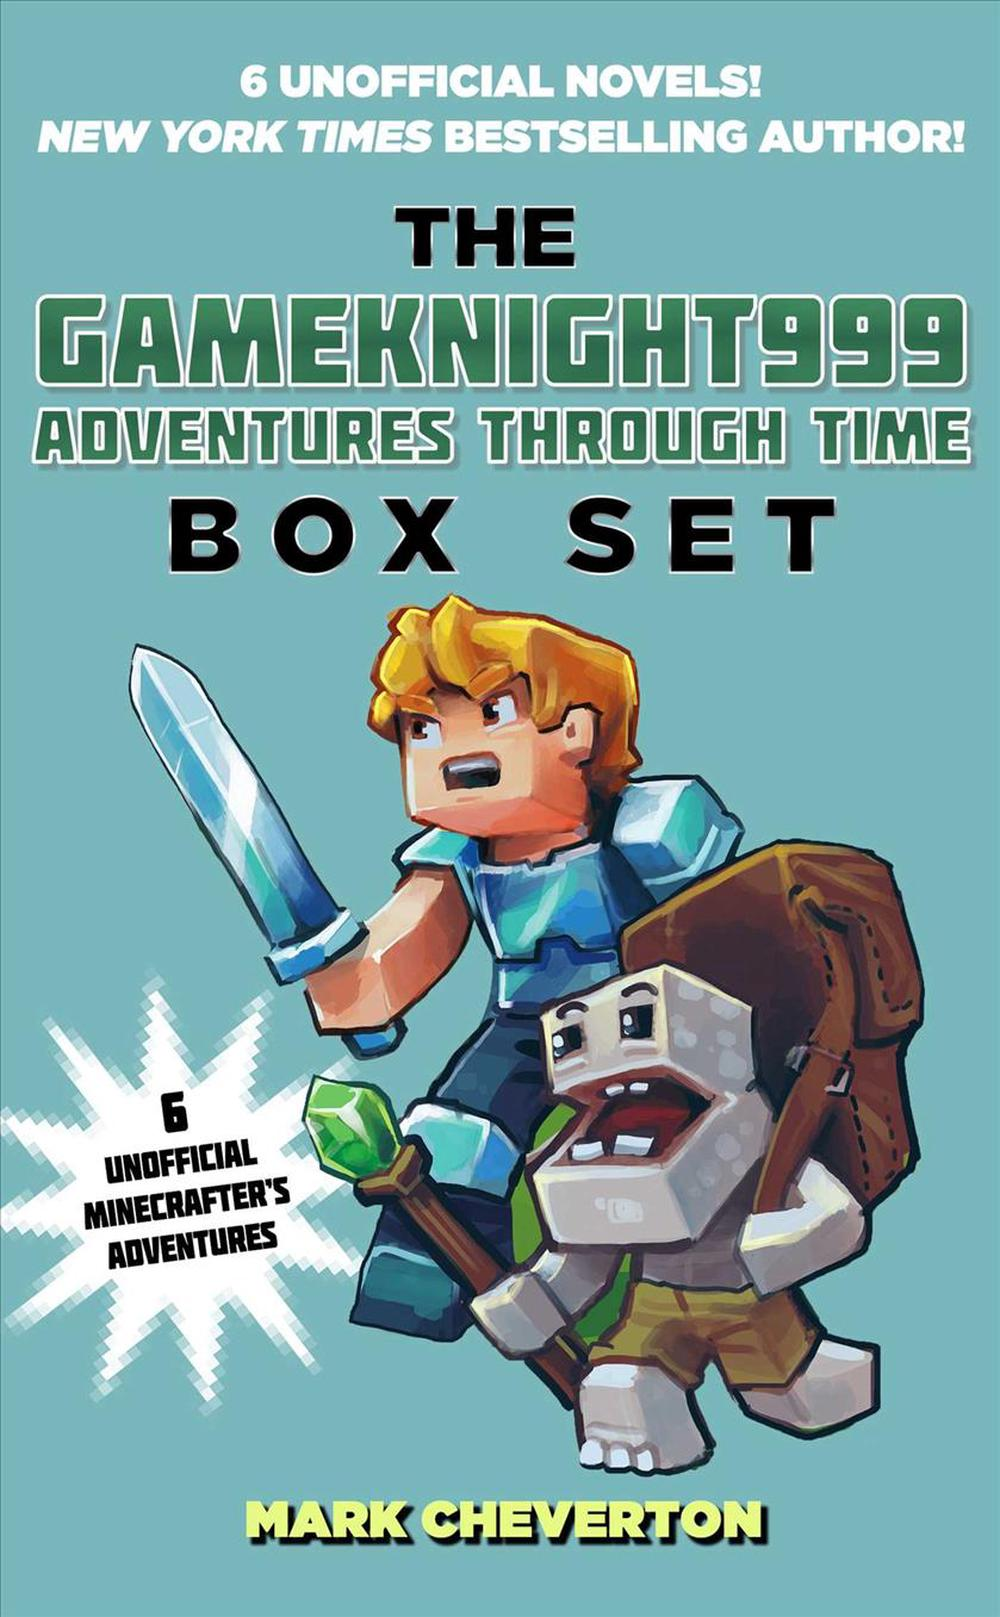 The Gameknight999 Adventures Through Time Box Set: Six Unofficial Minecrafter's Adventures by Mark Cheverton, ISBN: 9781510727403